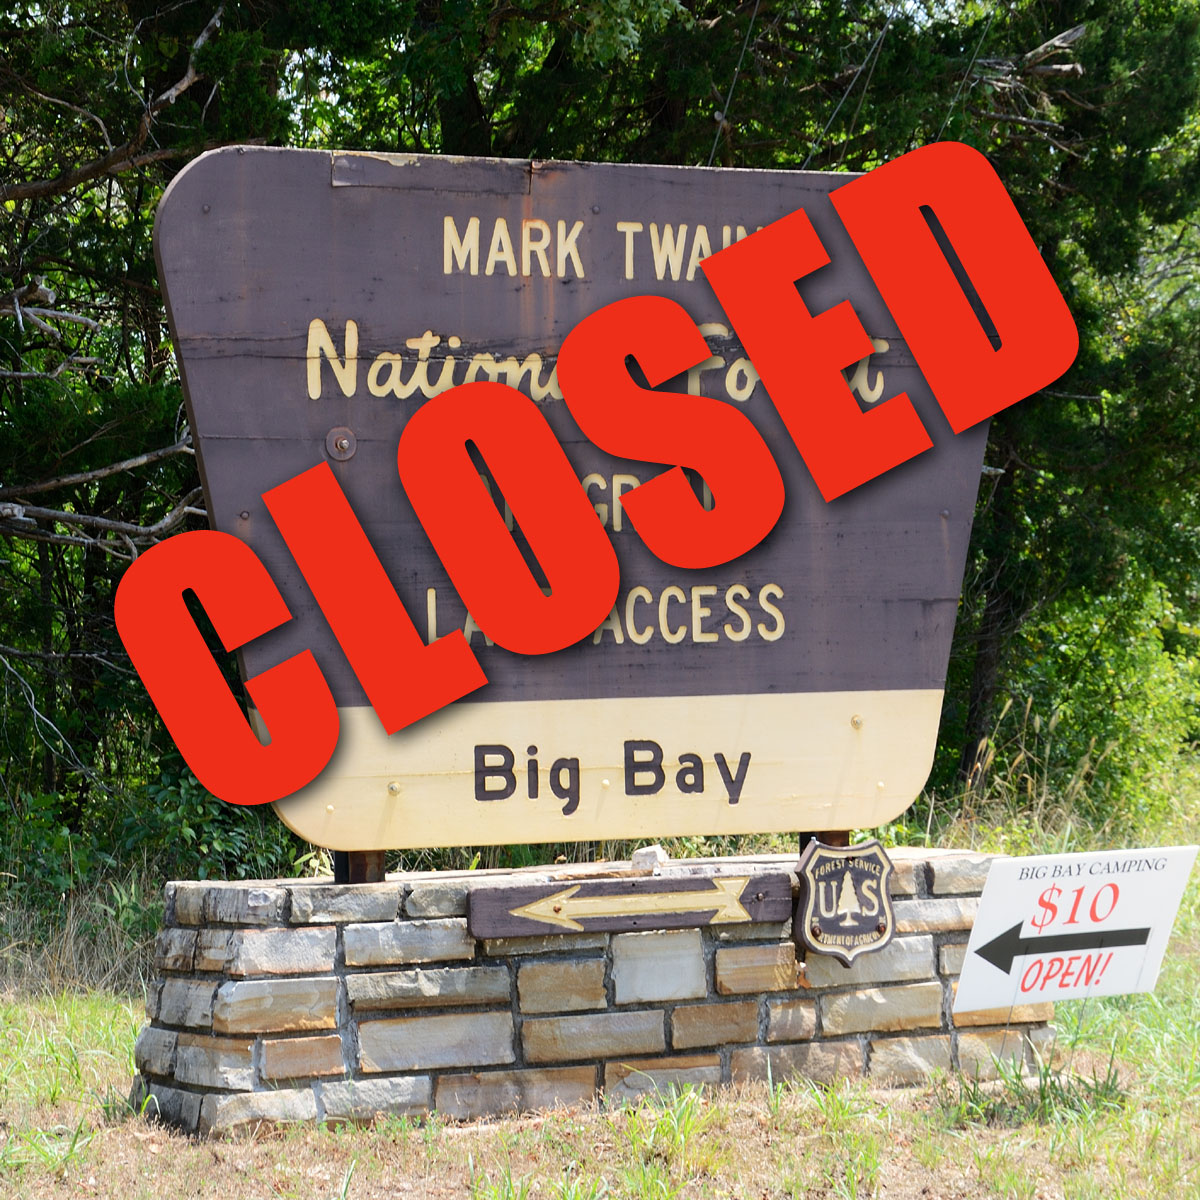 Mark Twain National Forest Closes Big Bay Campground